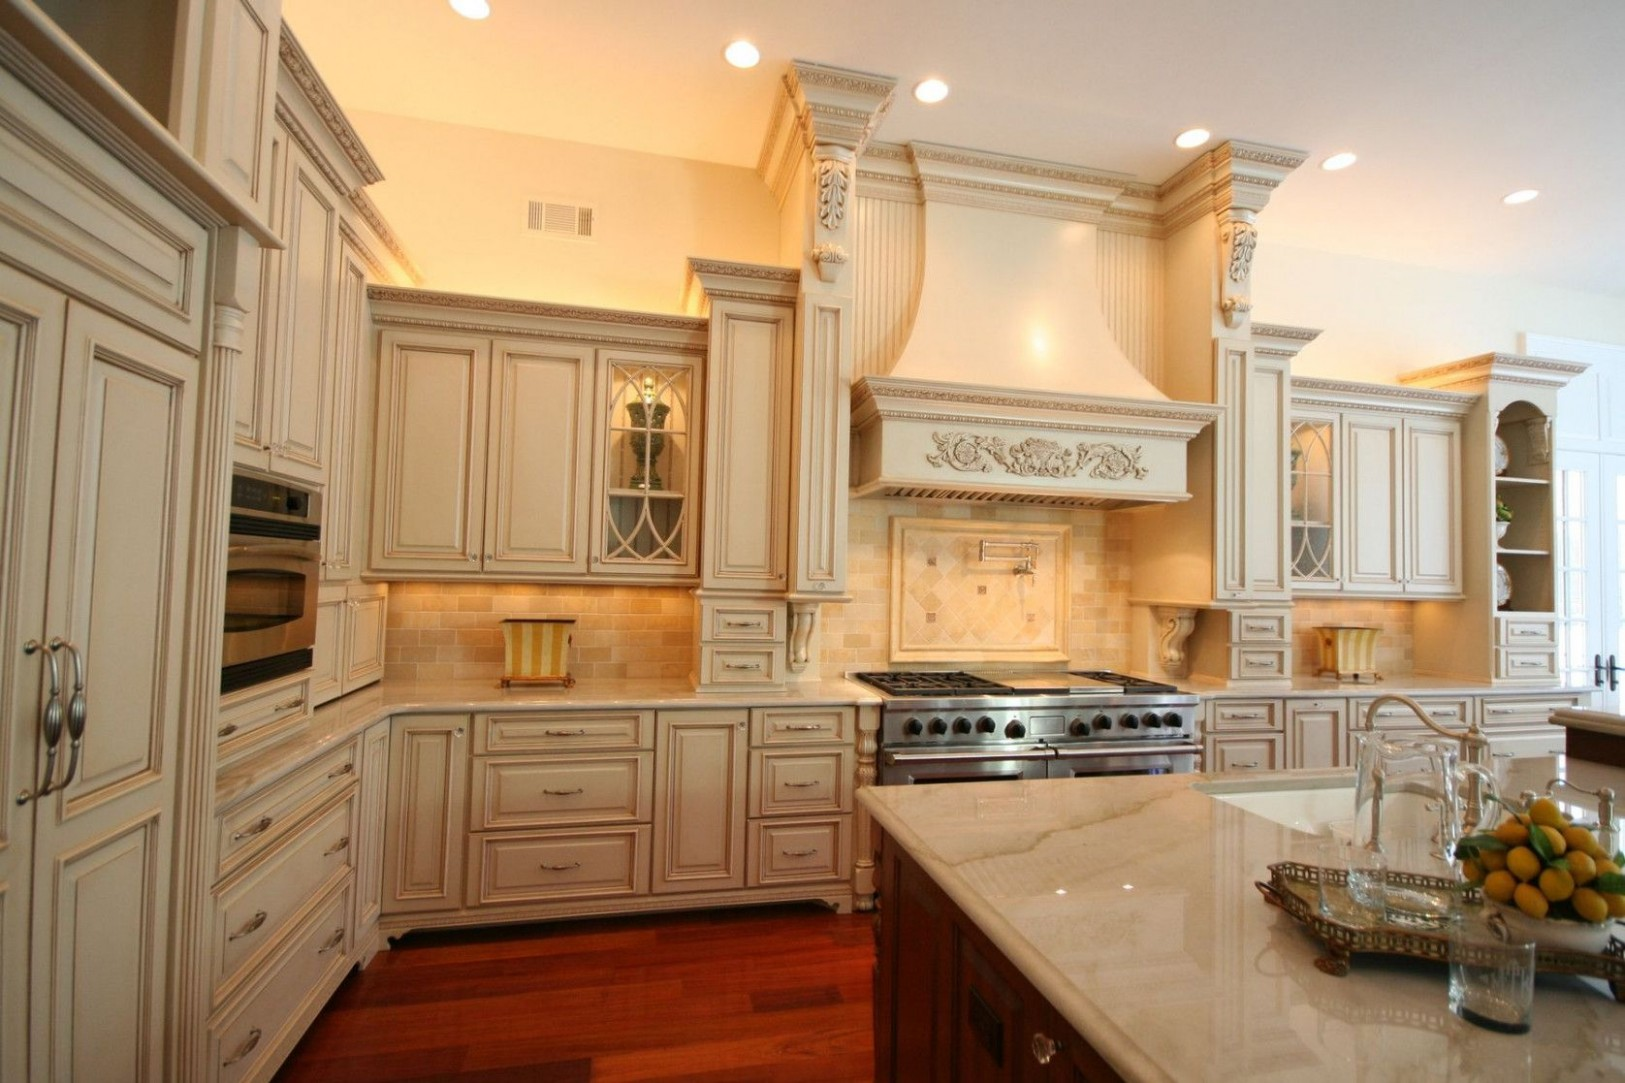 12+ Old World Kitchen Cabinets - Kitchen Counter top Ideas Check  - World Kitchen Cabinets